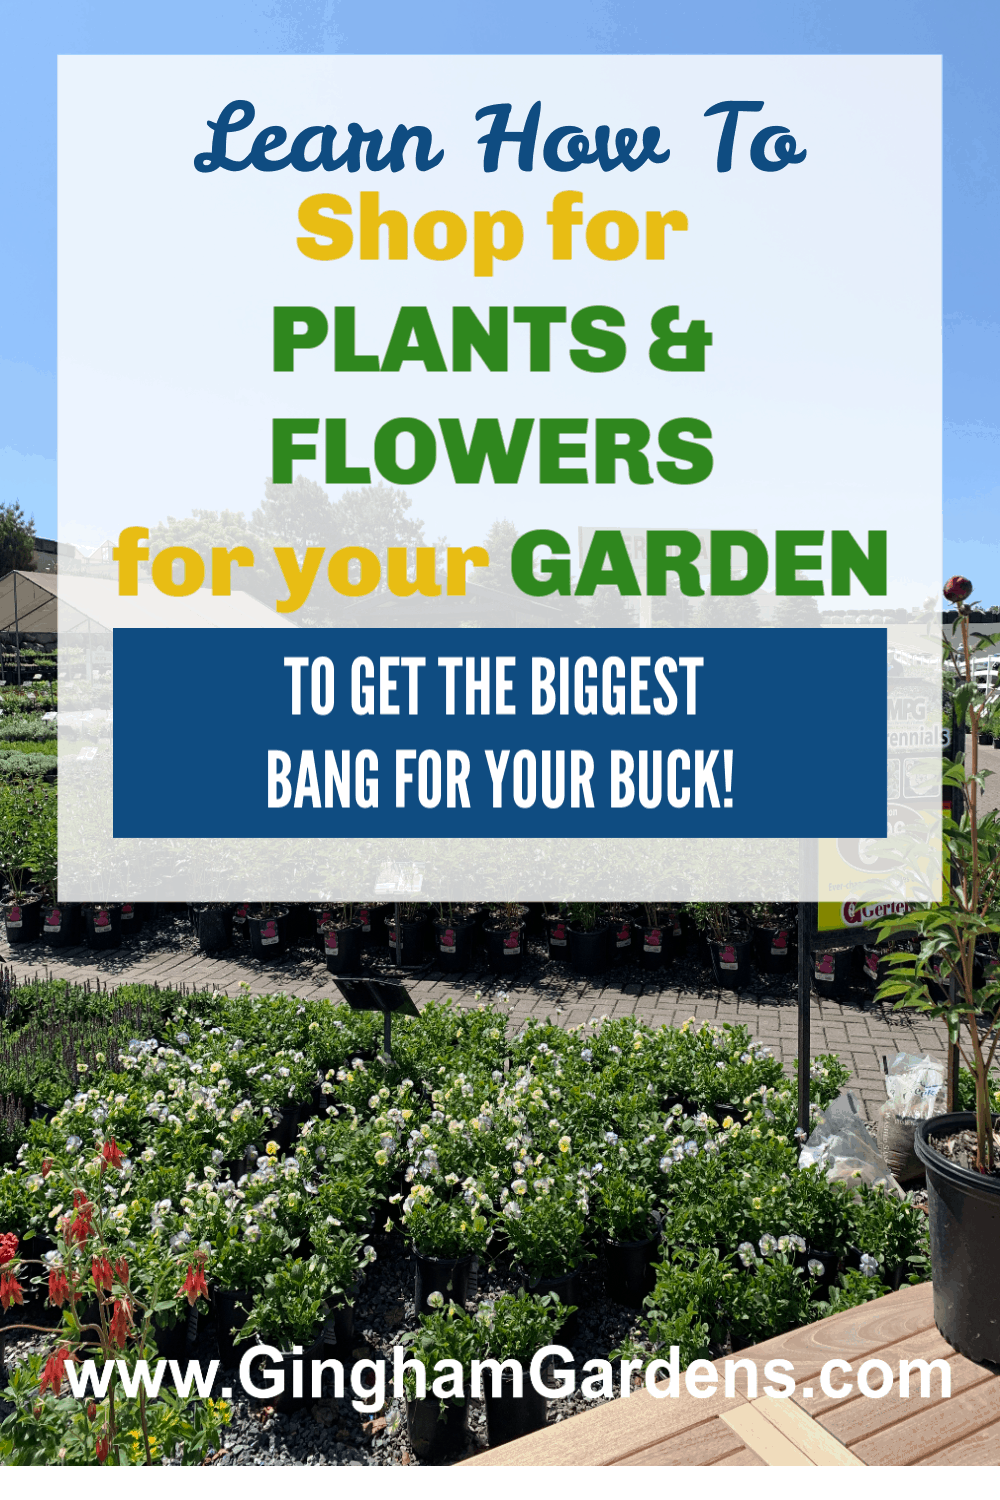 Garden Center with Text Overlay- How to Shop for Plants and Flowers for your Garden